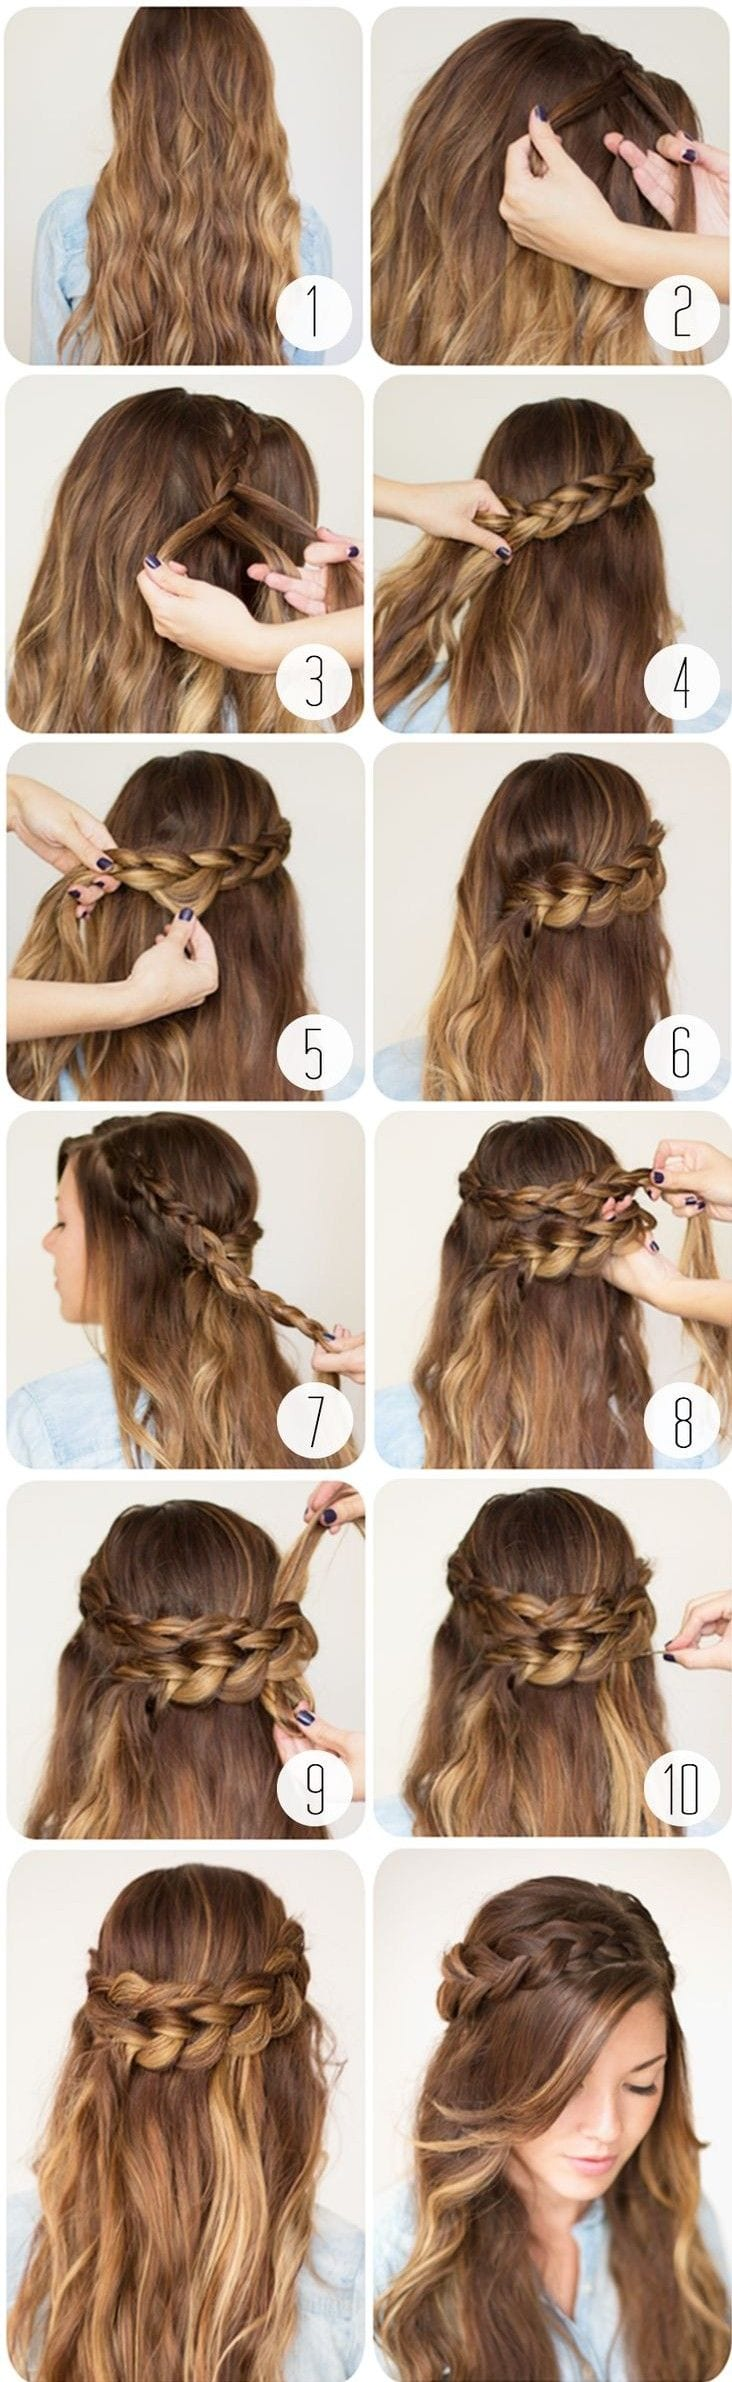 20 cute and easy braided hairstyle tutorials latest styles